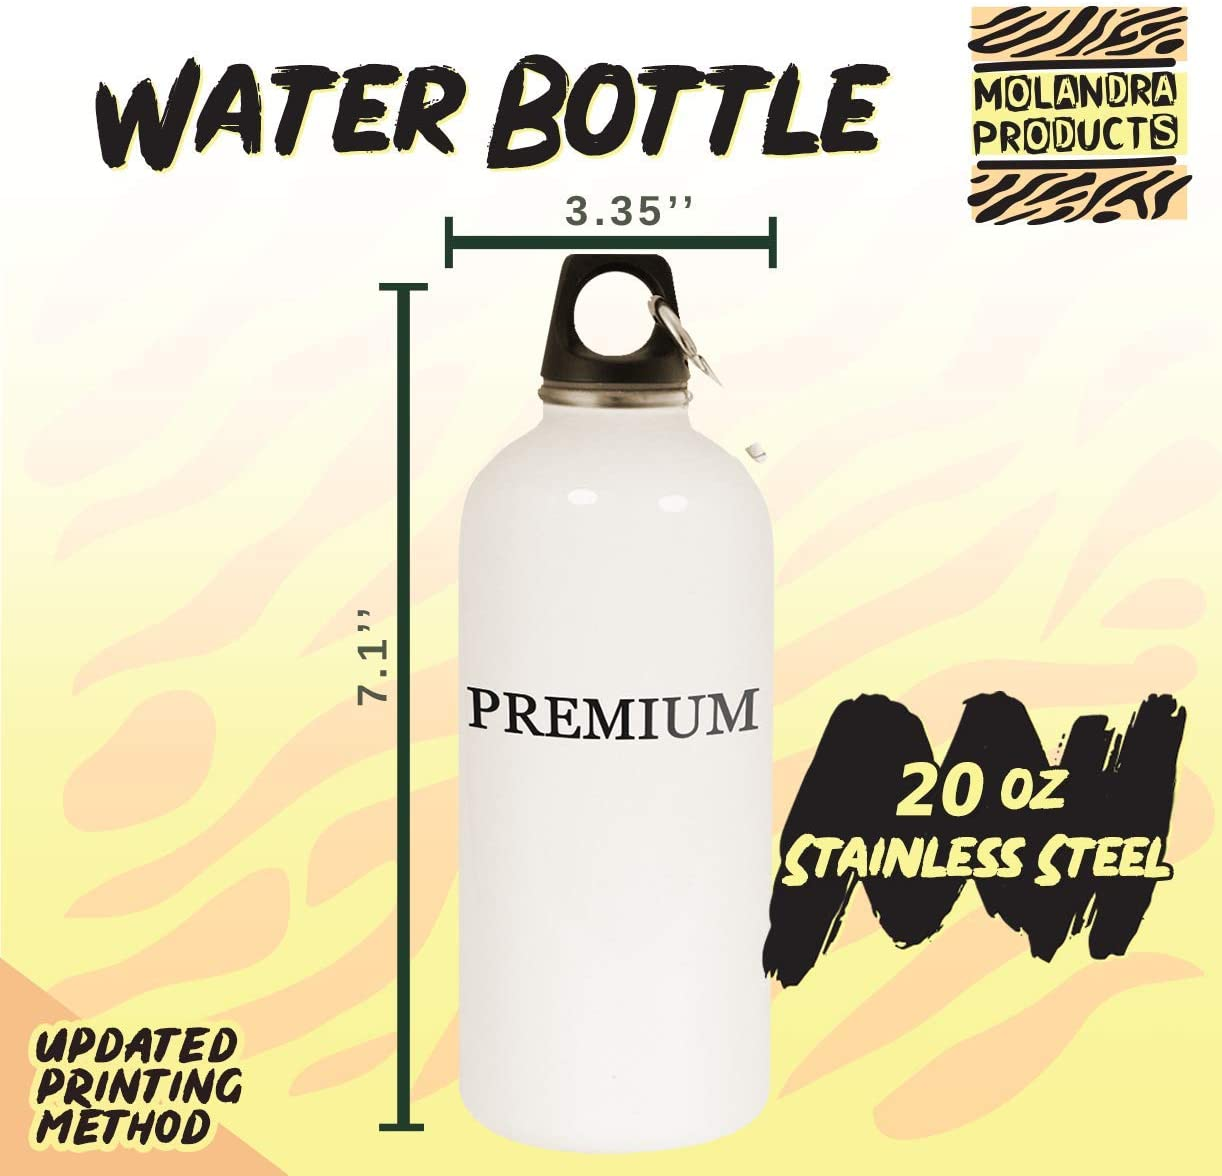 B083PPJF9L #la - 20oz Hashtag Stainless Steel White Water Bottle with Carabiner, White 51jAKLH9OaL